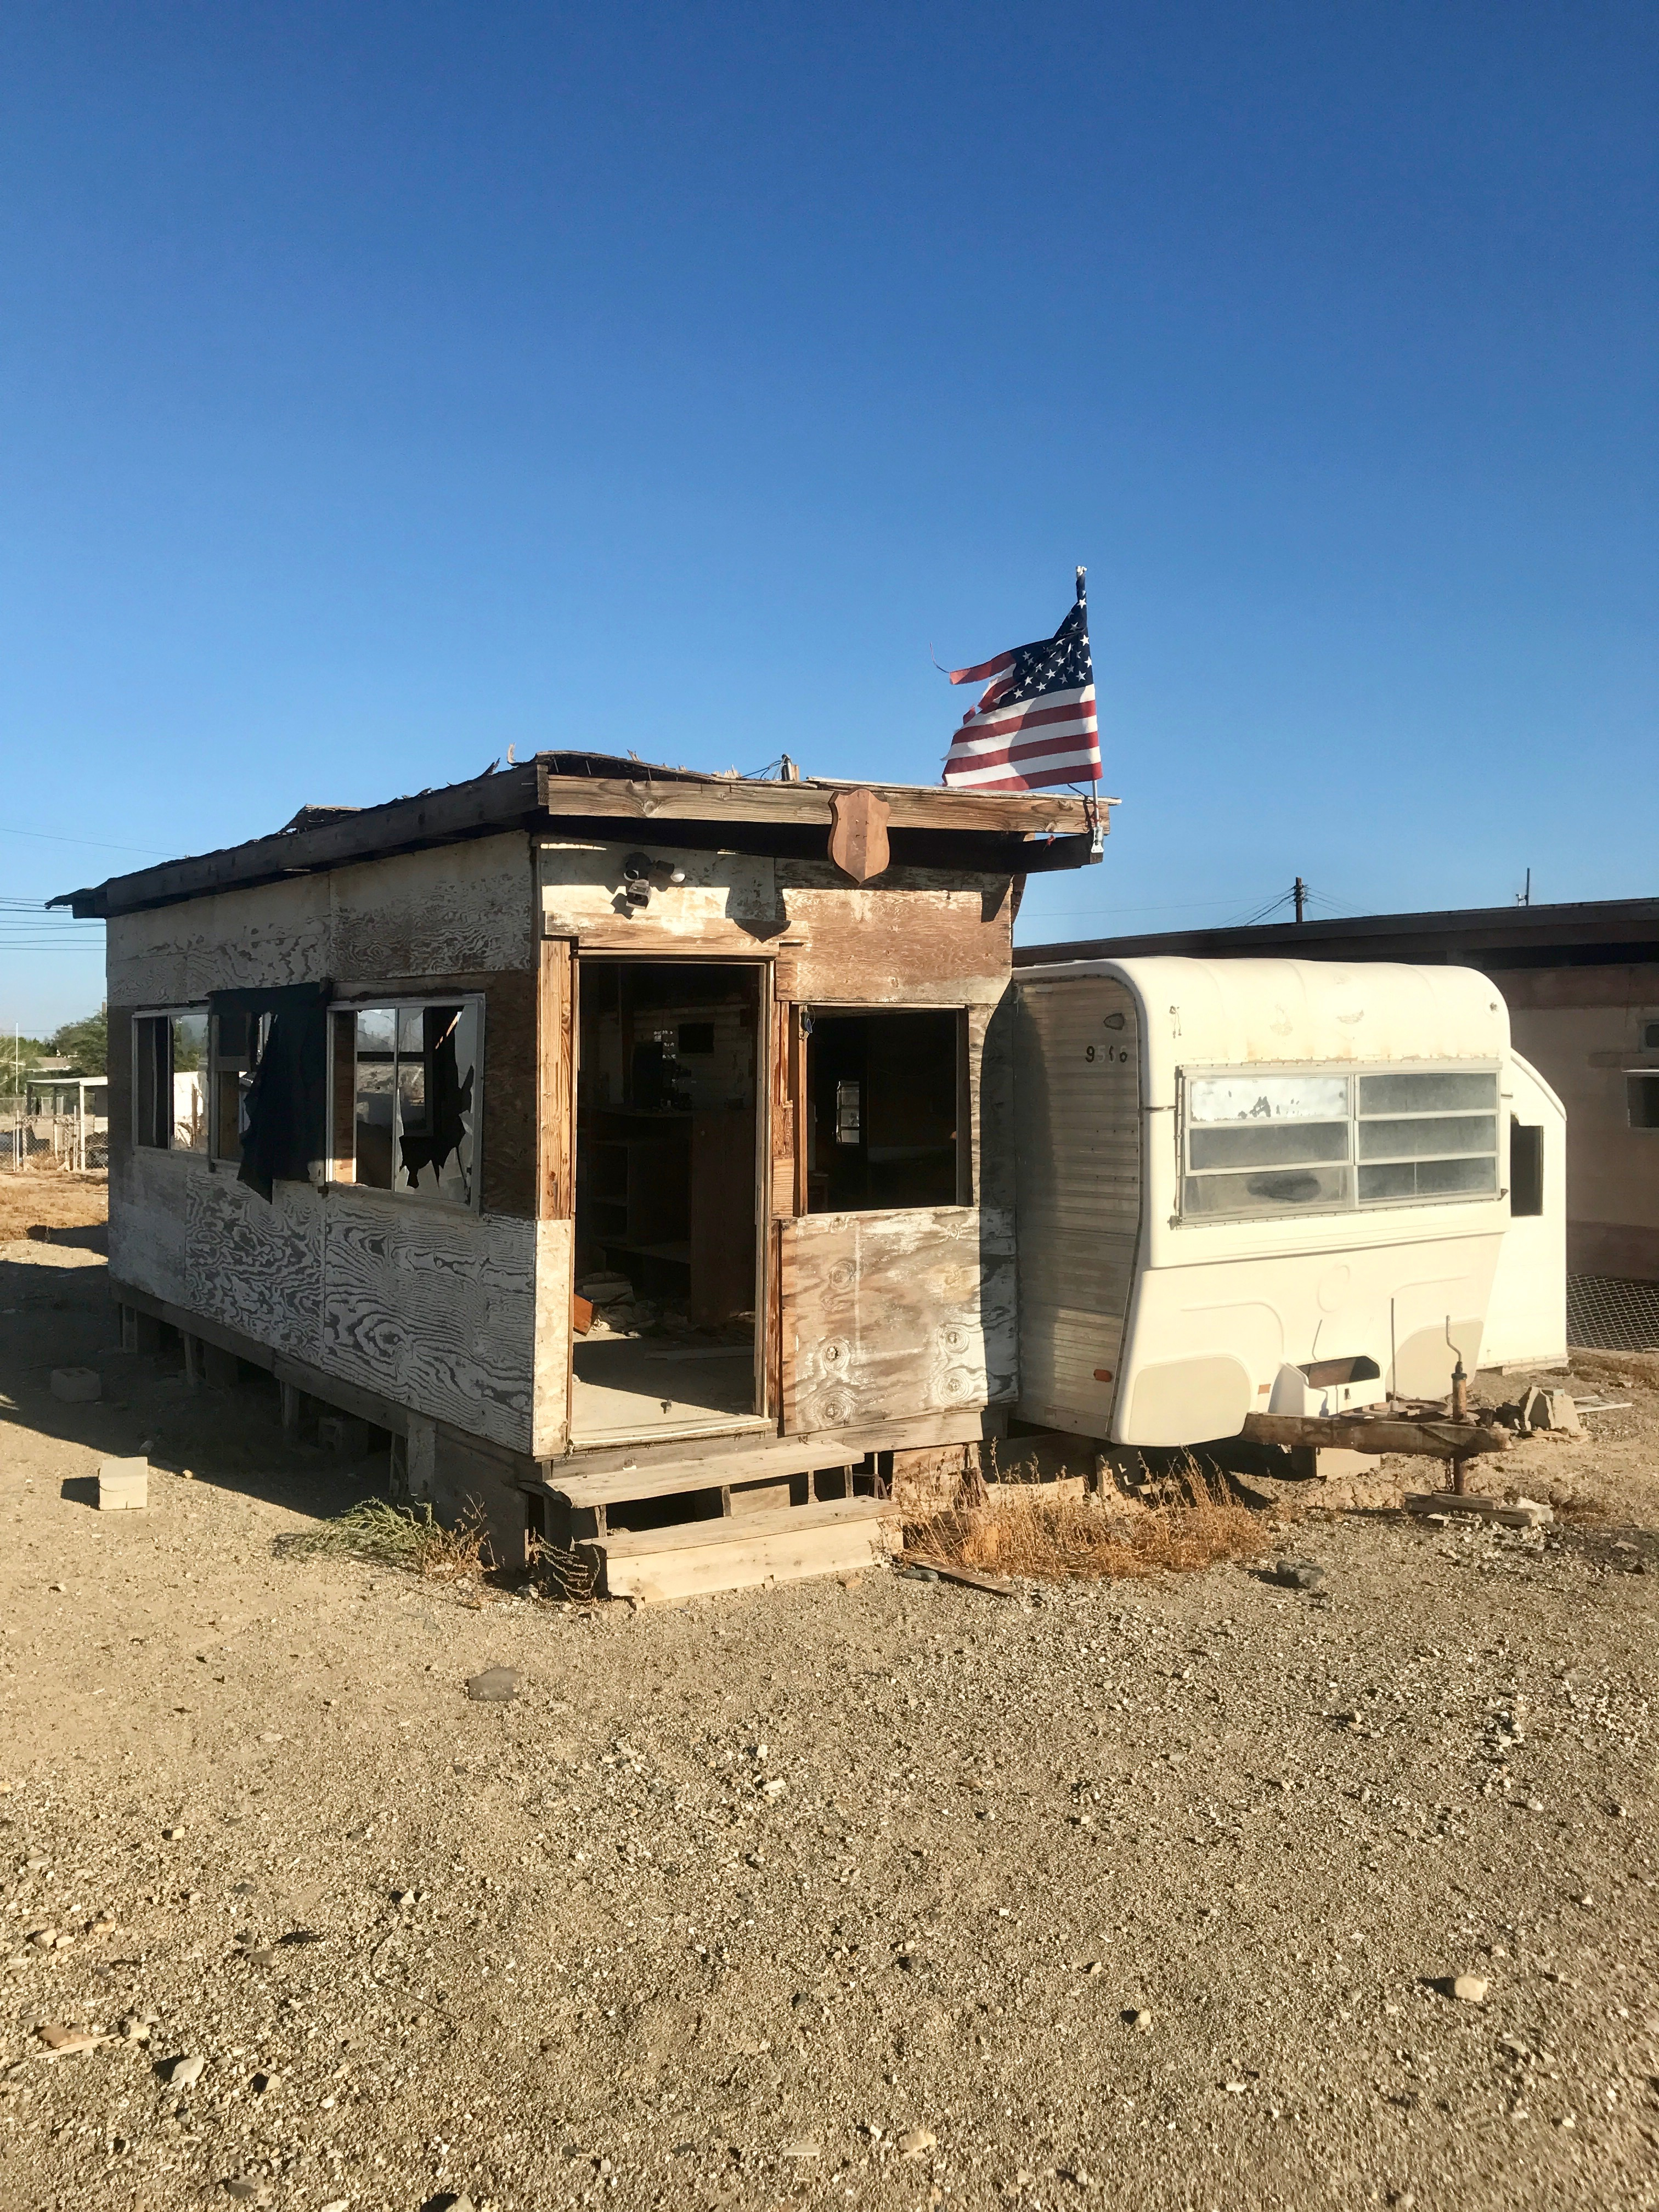 Abandoned Beach House And Shredded Flag At Bombay A Once Popular Resort Town On The Salton Seas Eastern Side Photo Nikki Kreuzer